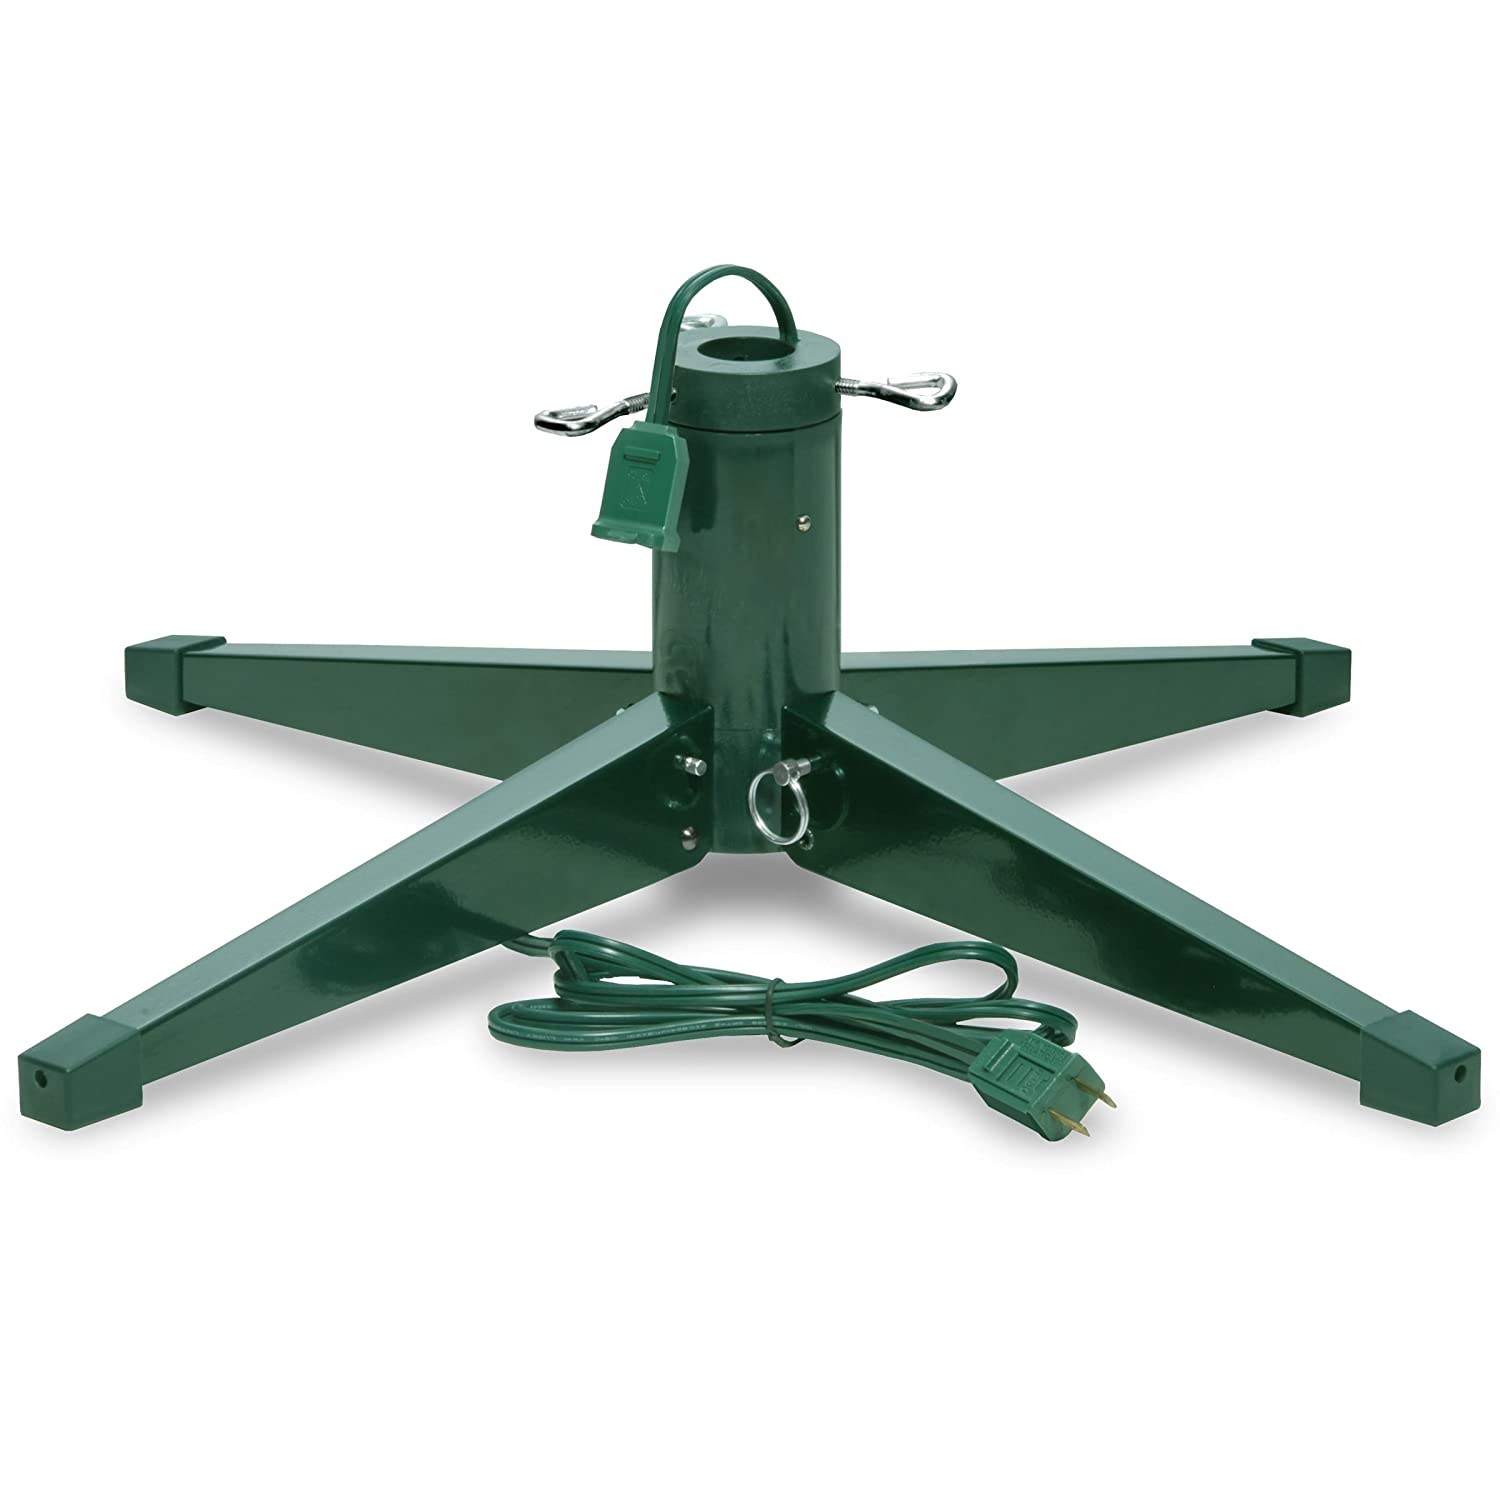 Amazon.com: Heavy-duty Rotating Revolving Tree Stand, Seasonal ...